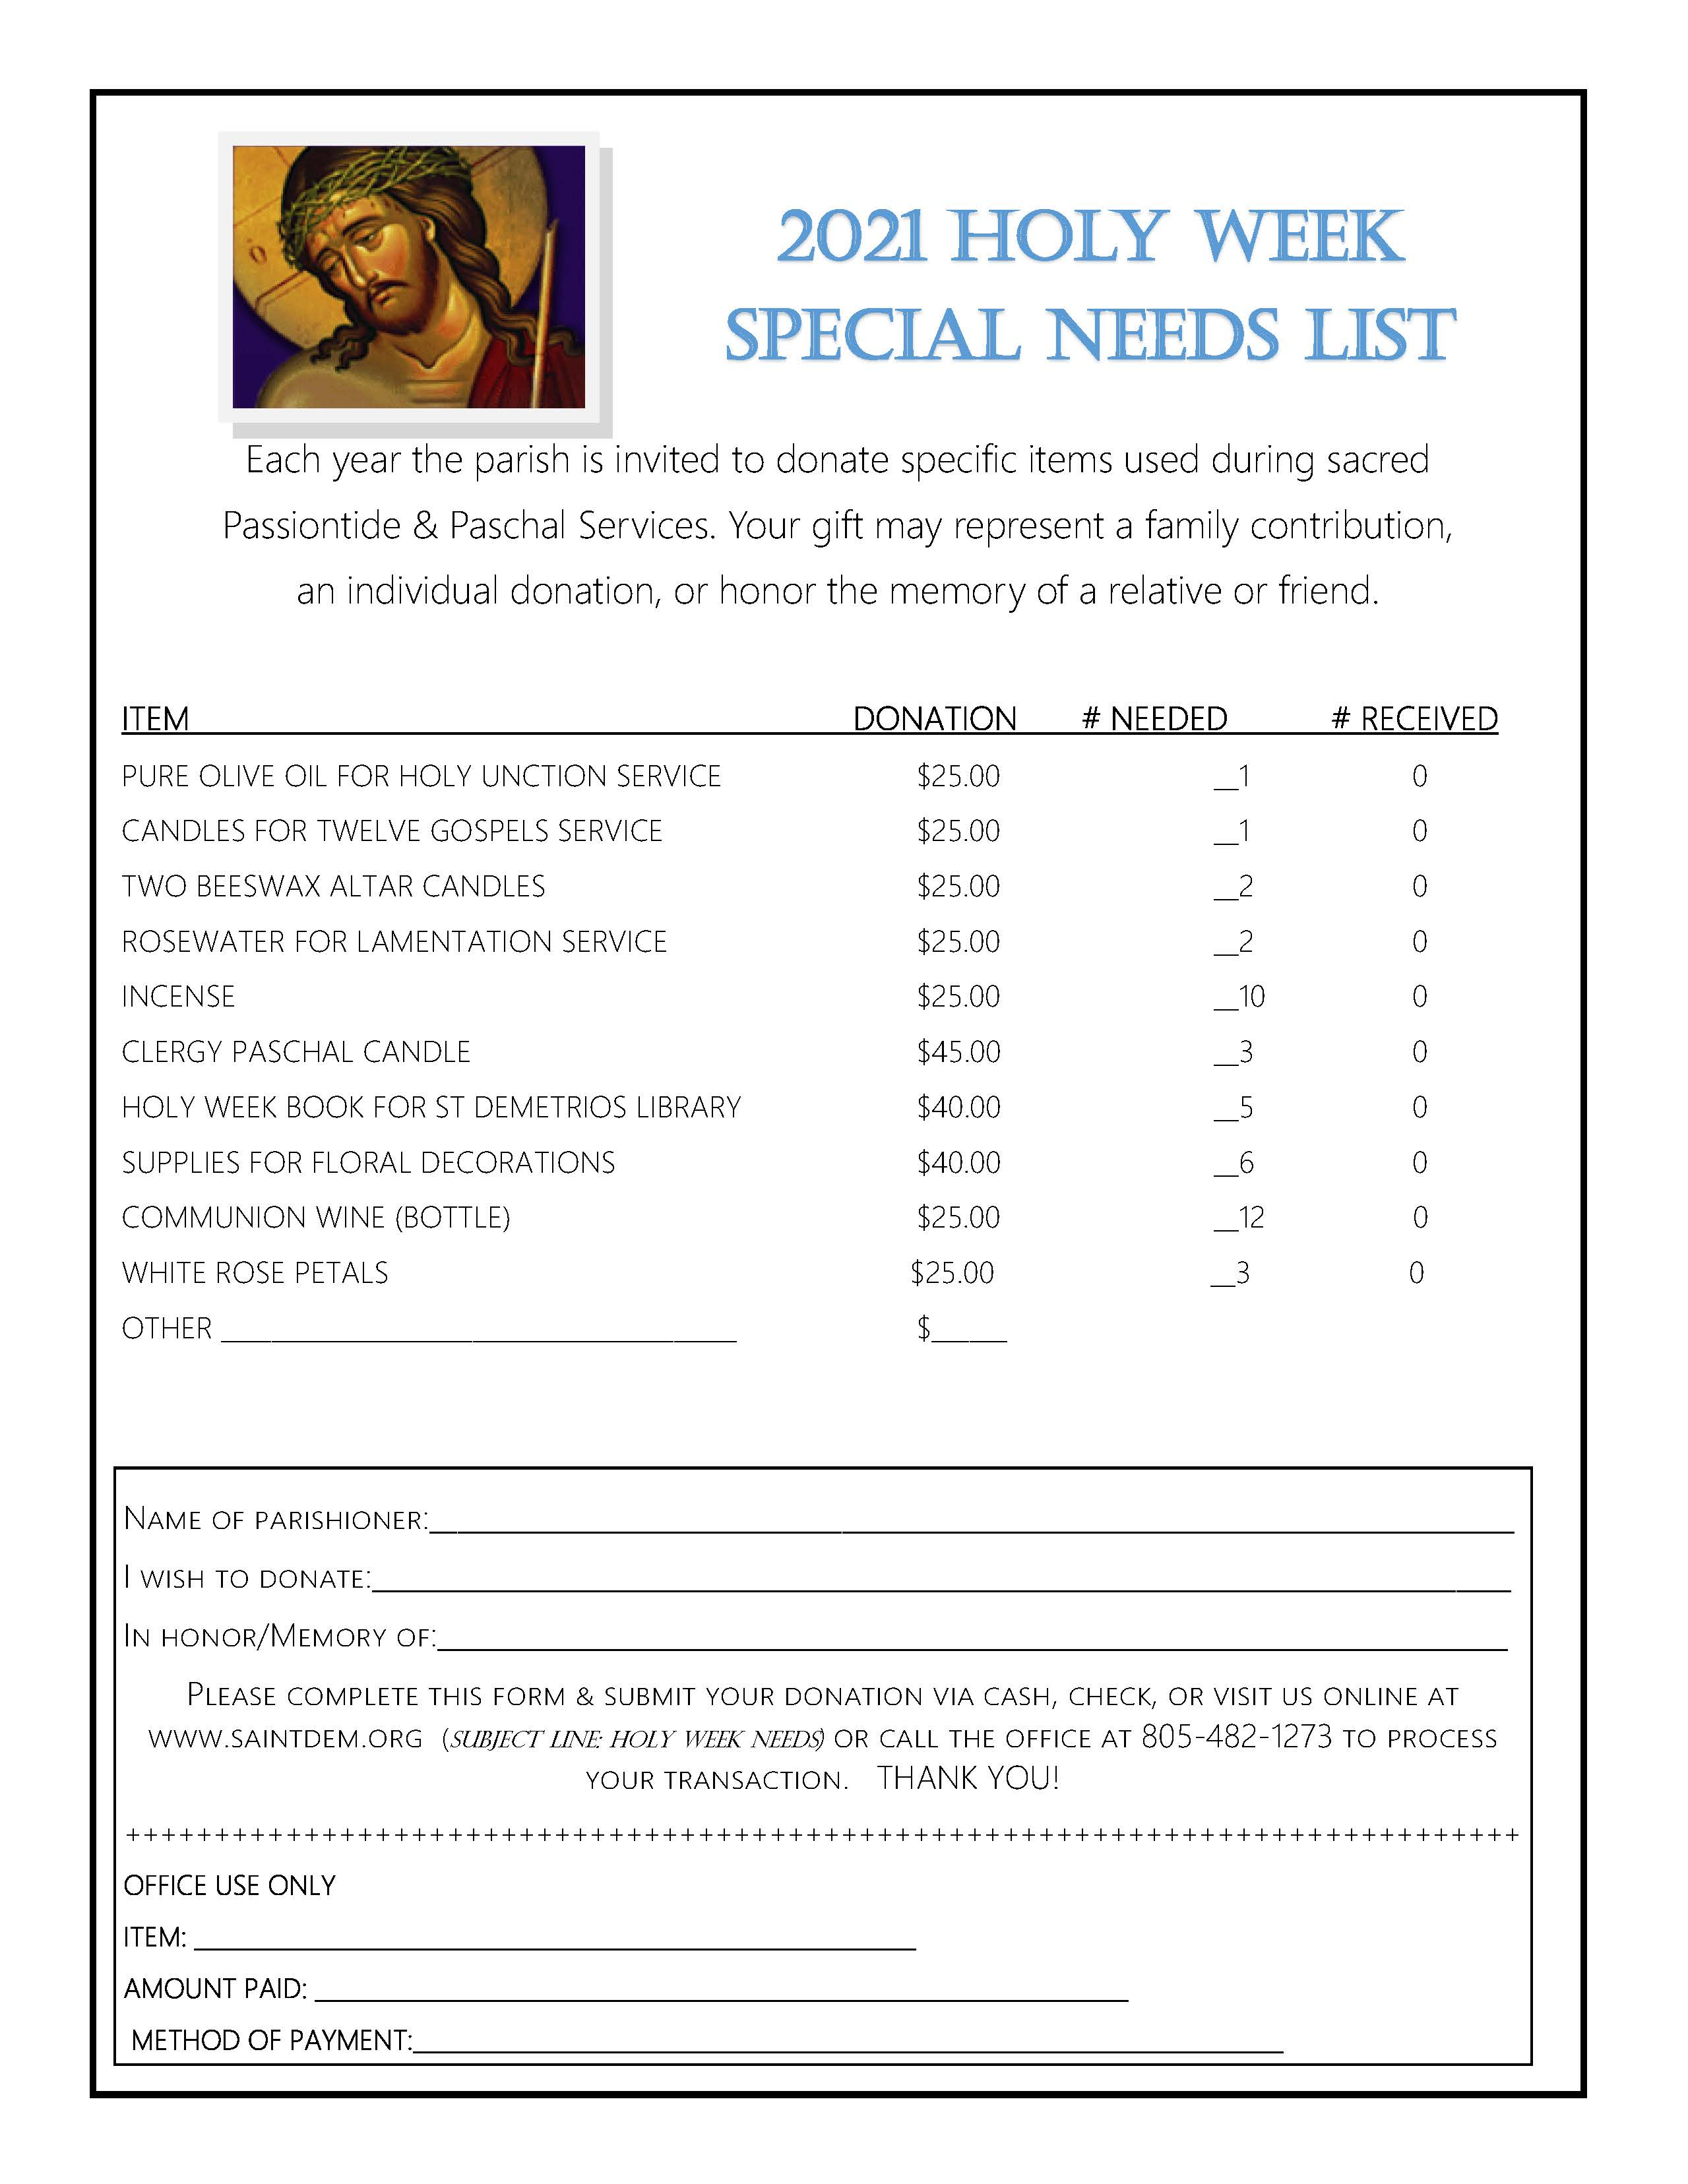 Holy Week Special Needs List